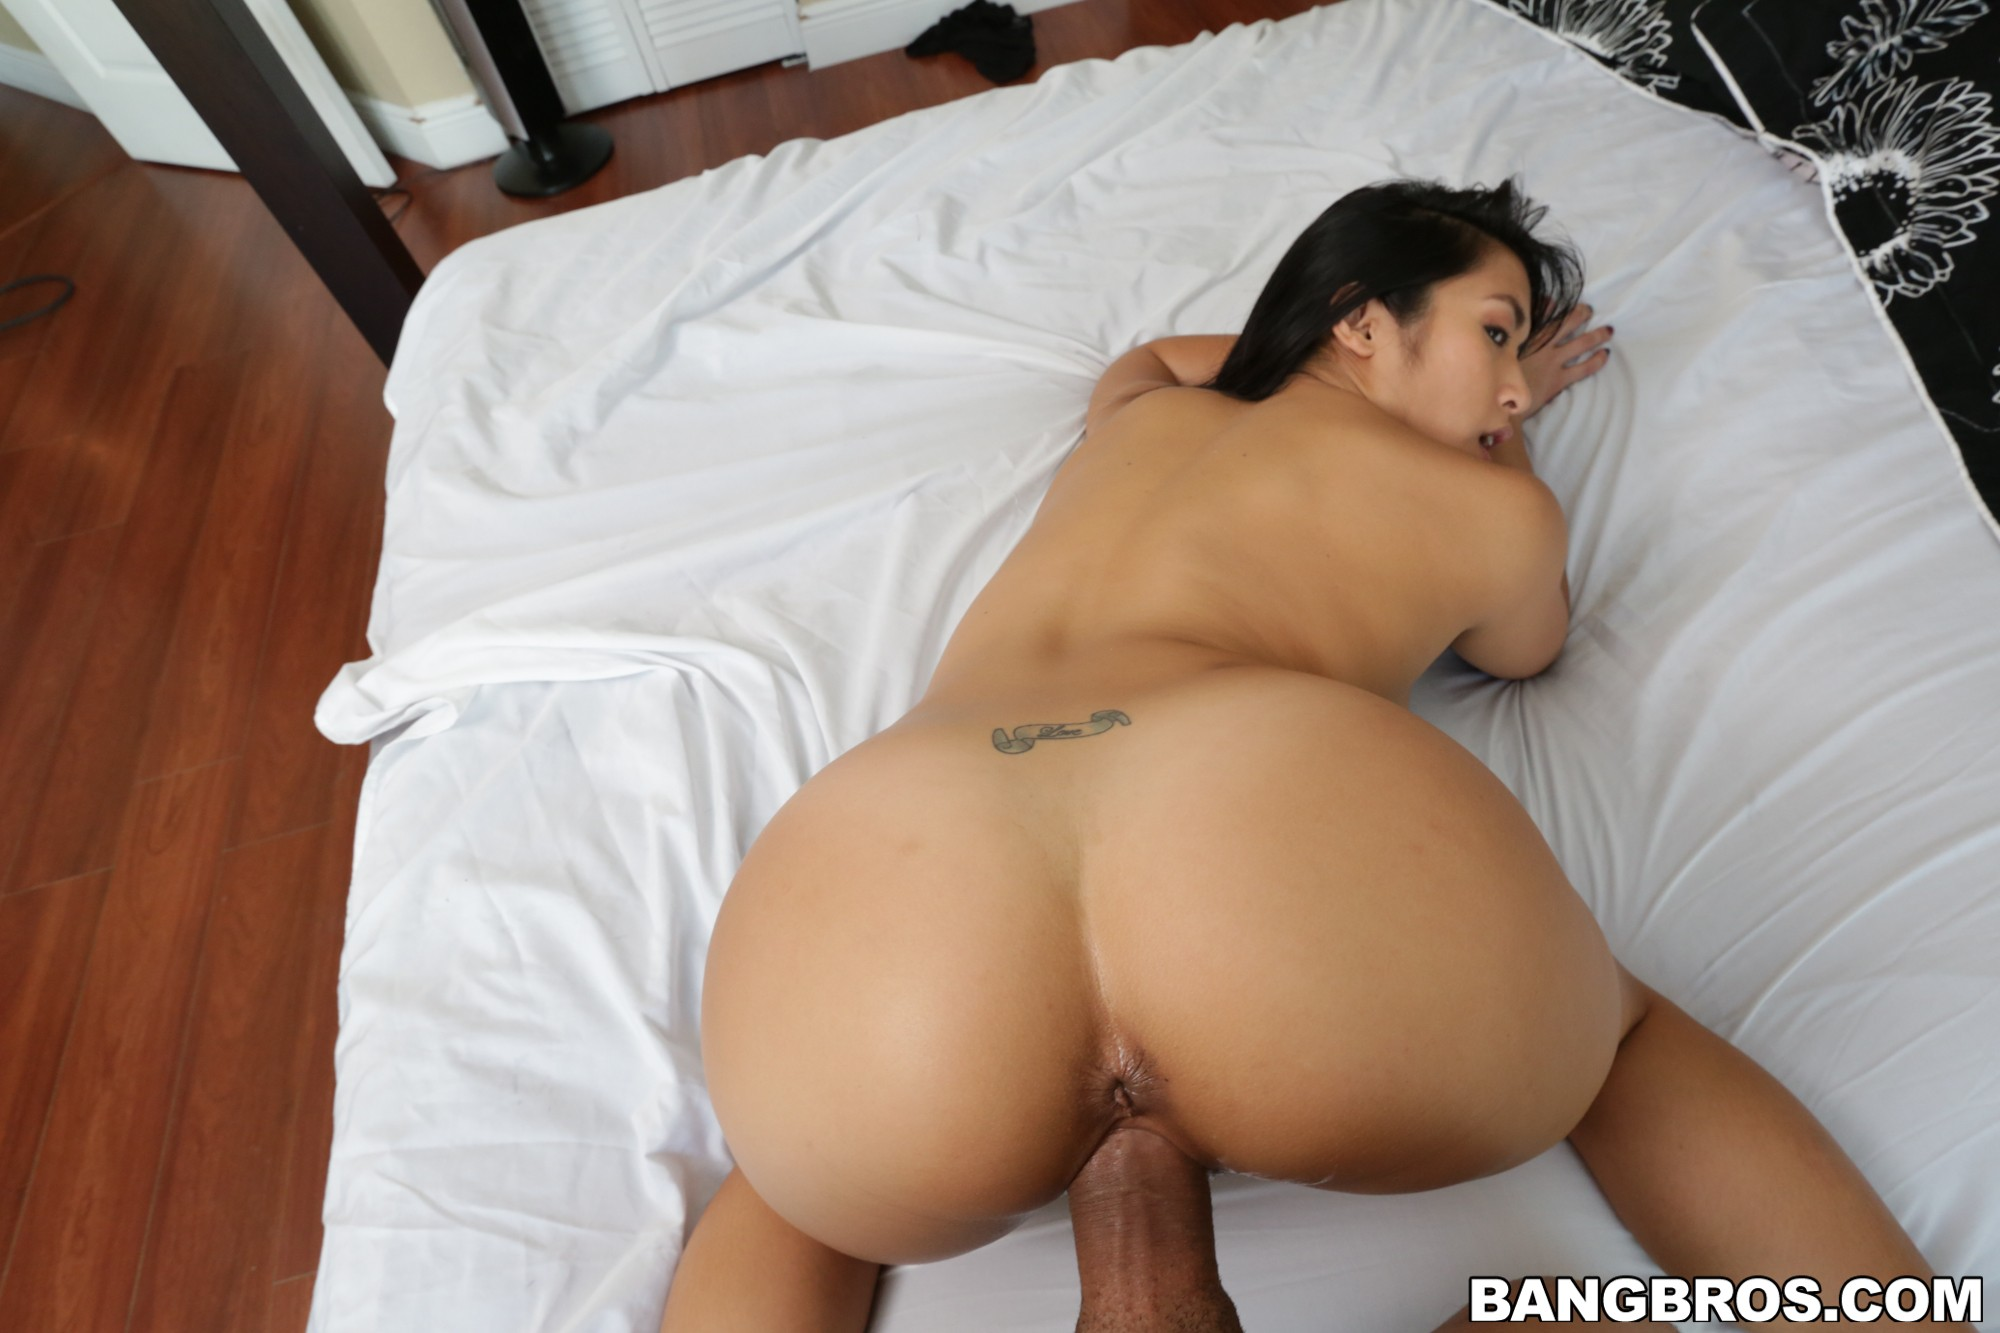 Nadia noel for with an all blow job set